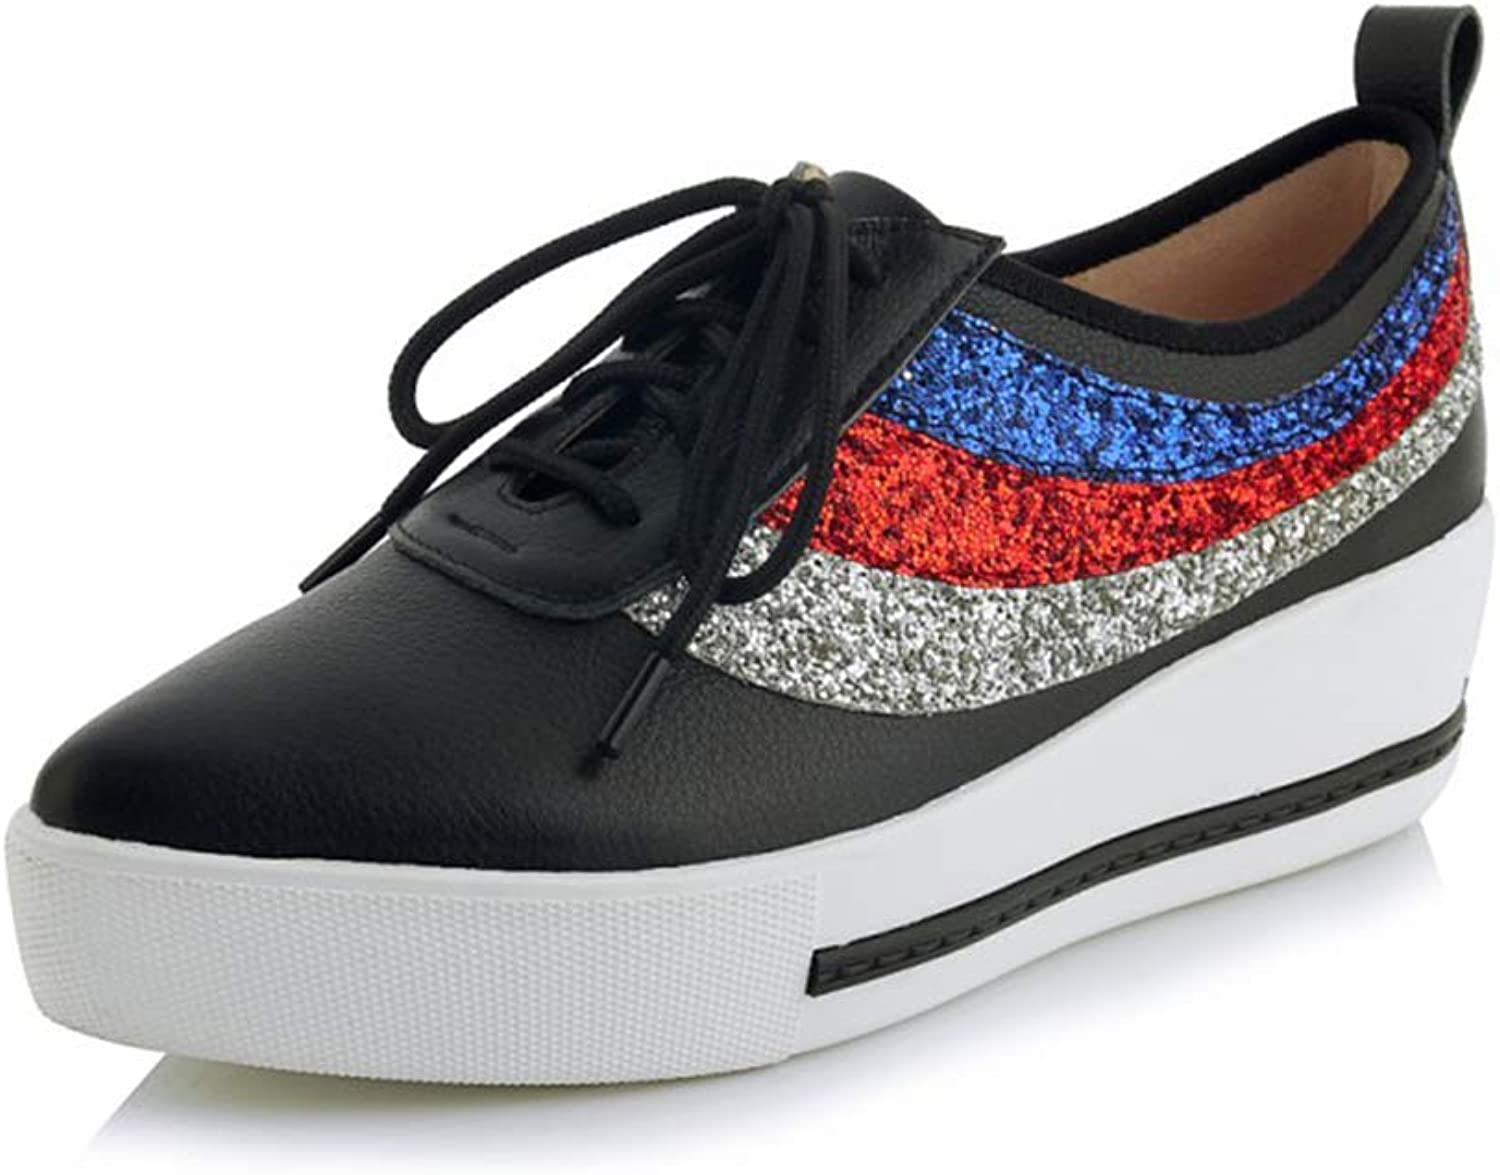 Women's Deck shoes Leather Fashion Pointed Lazy shoes Sequined Platform shoes Lace Up Low-Top Casual shoes Black Beige,Black,38